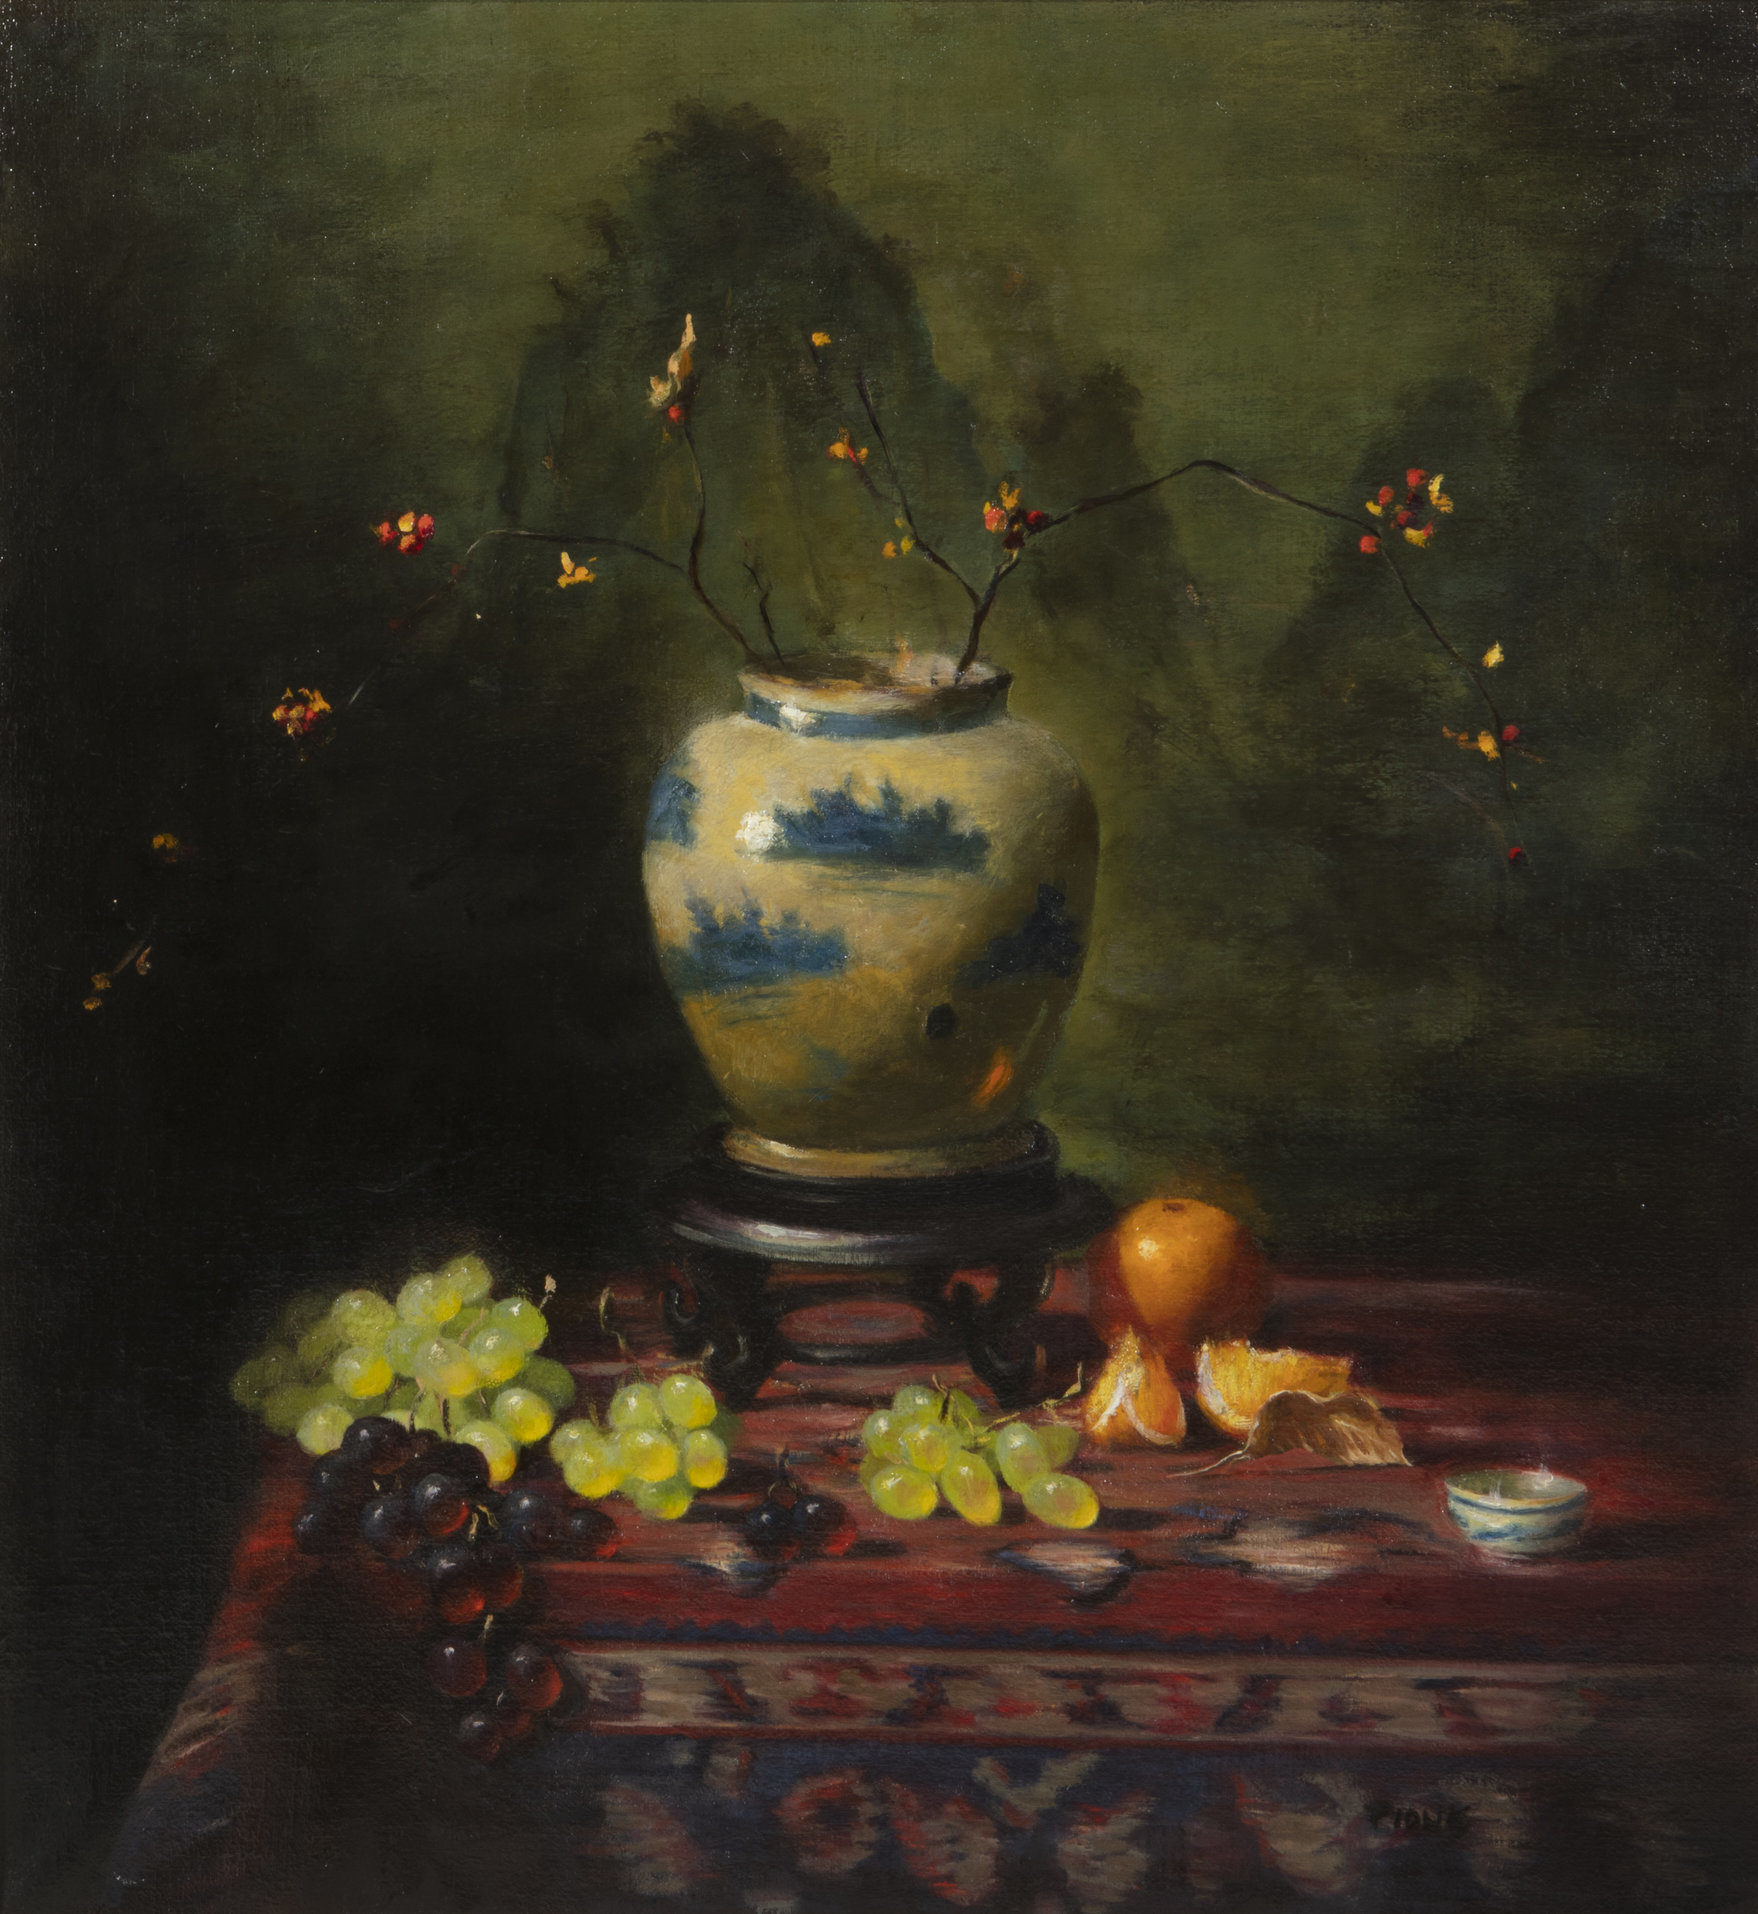 Oil on canvas by Richard Pionk (American, 1936-2007), titled Still Life with Cherry Blossoms in a Chinese Blue and White Vase, signed 'Pionk' lower right (est. $700-$900).